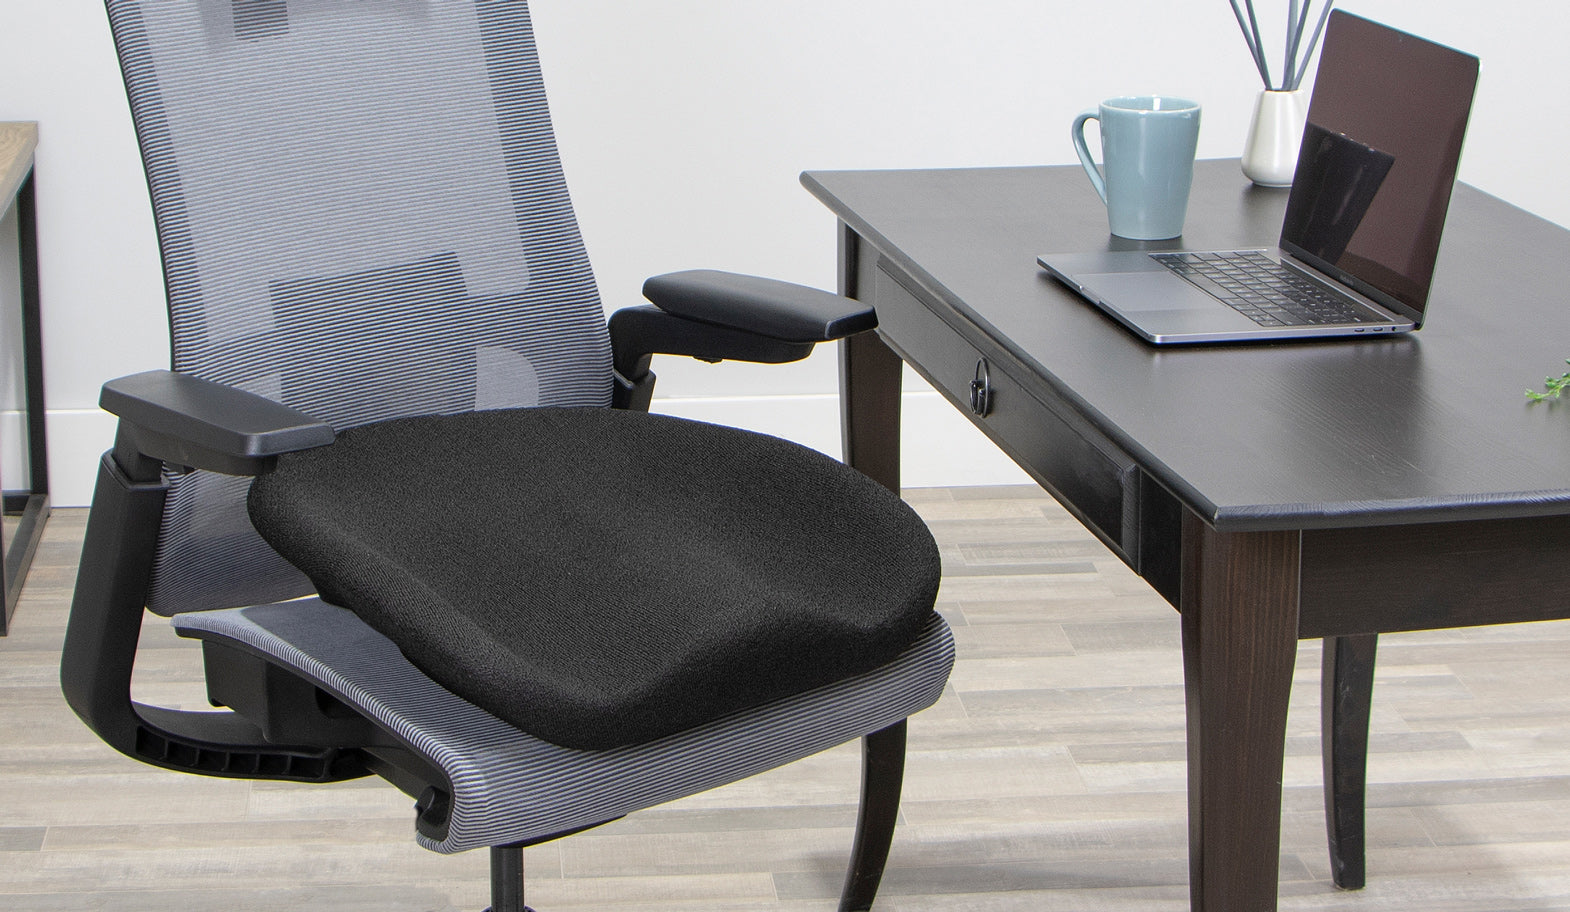 LIFEFORM Chairs USA